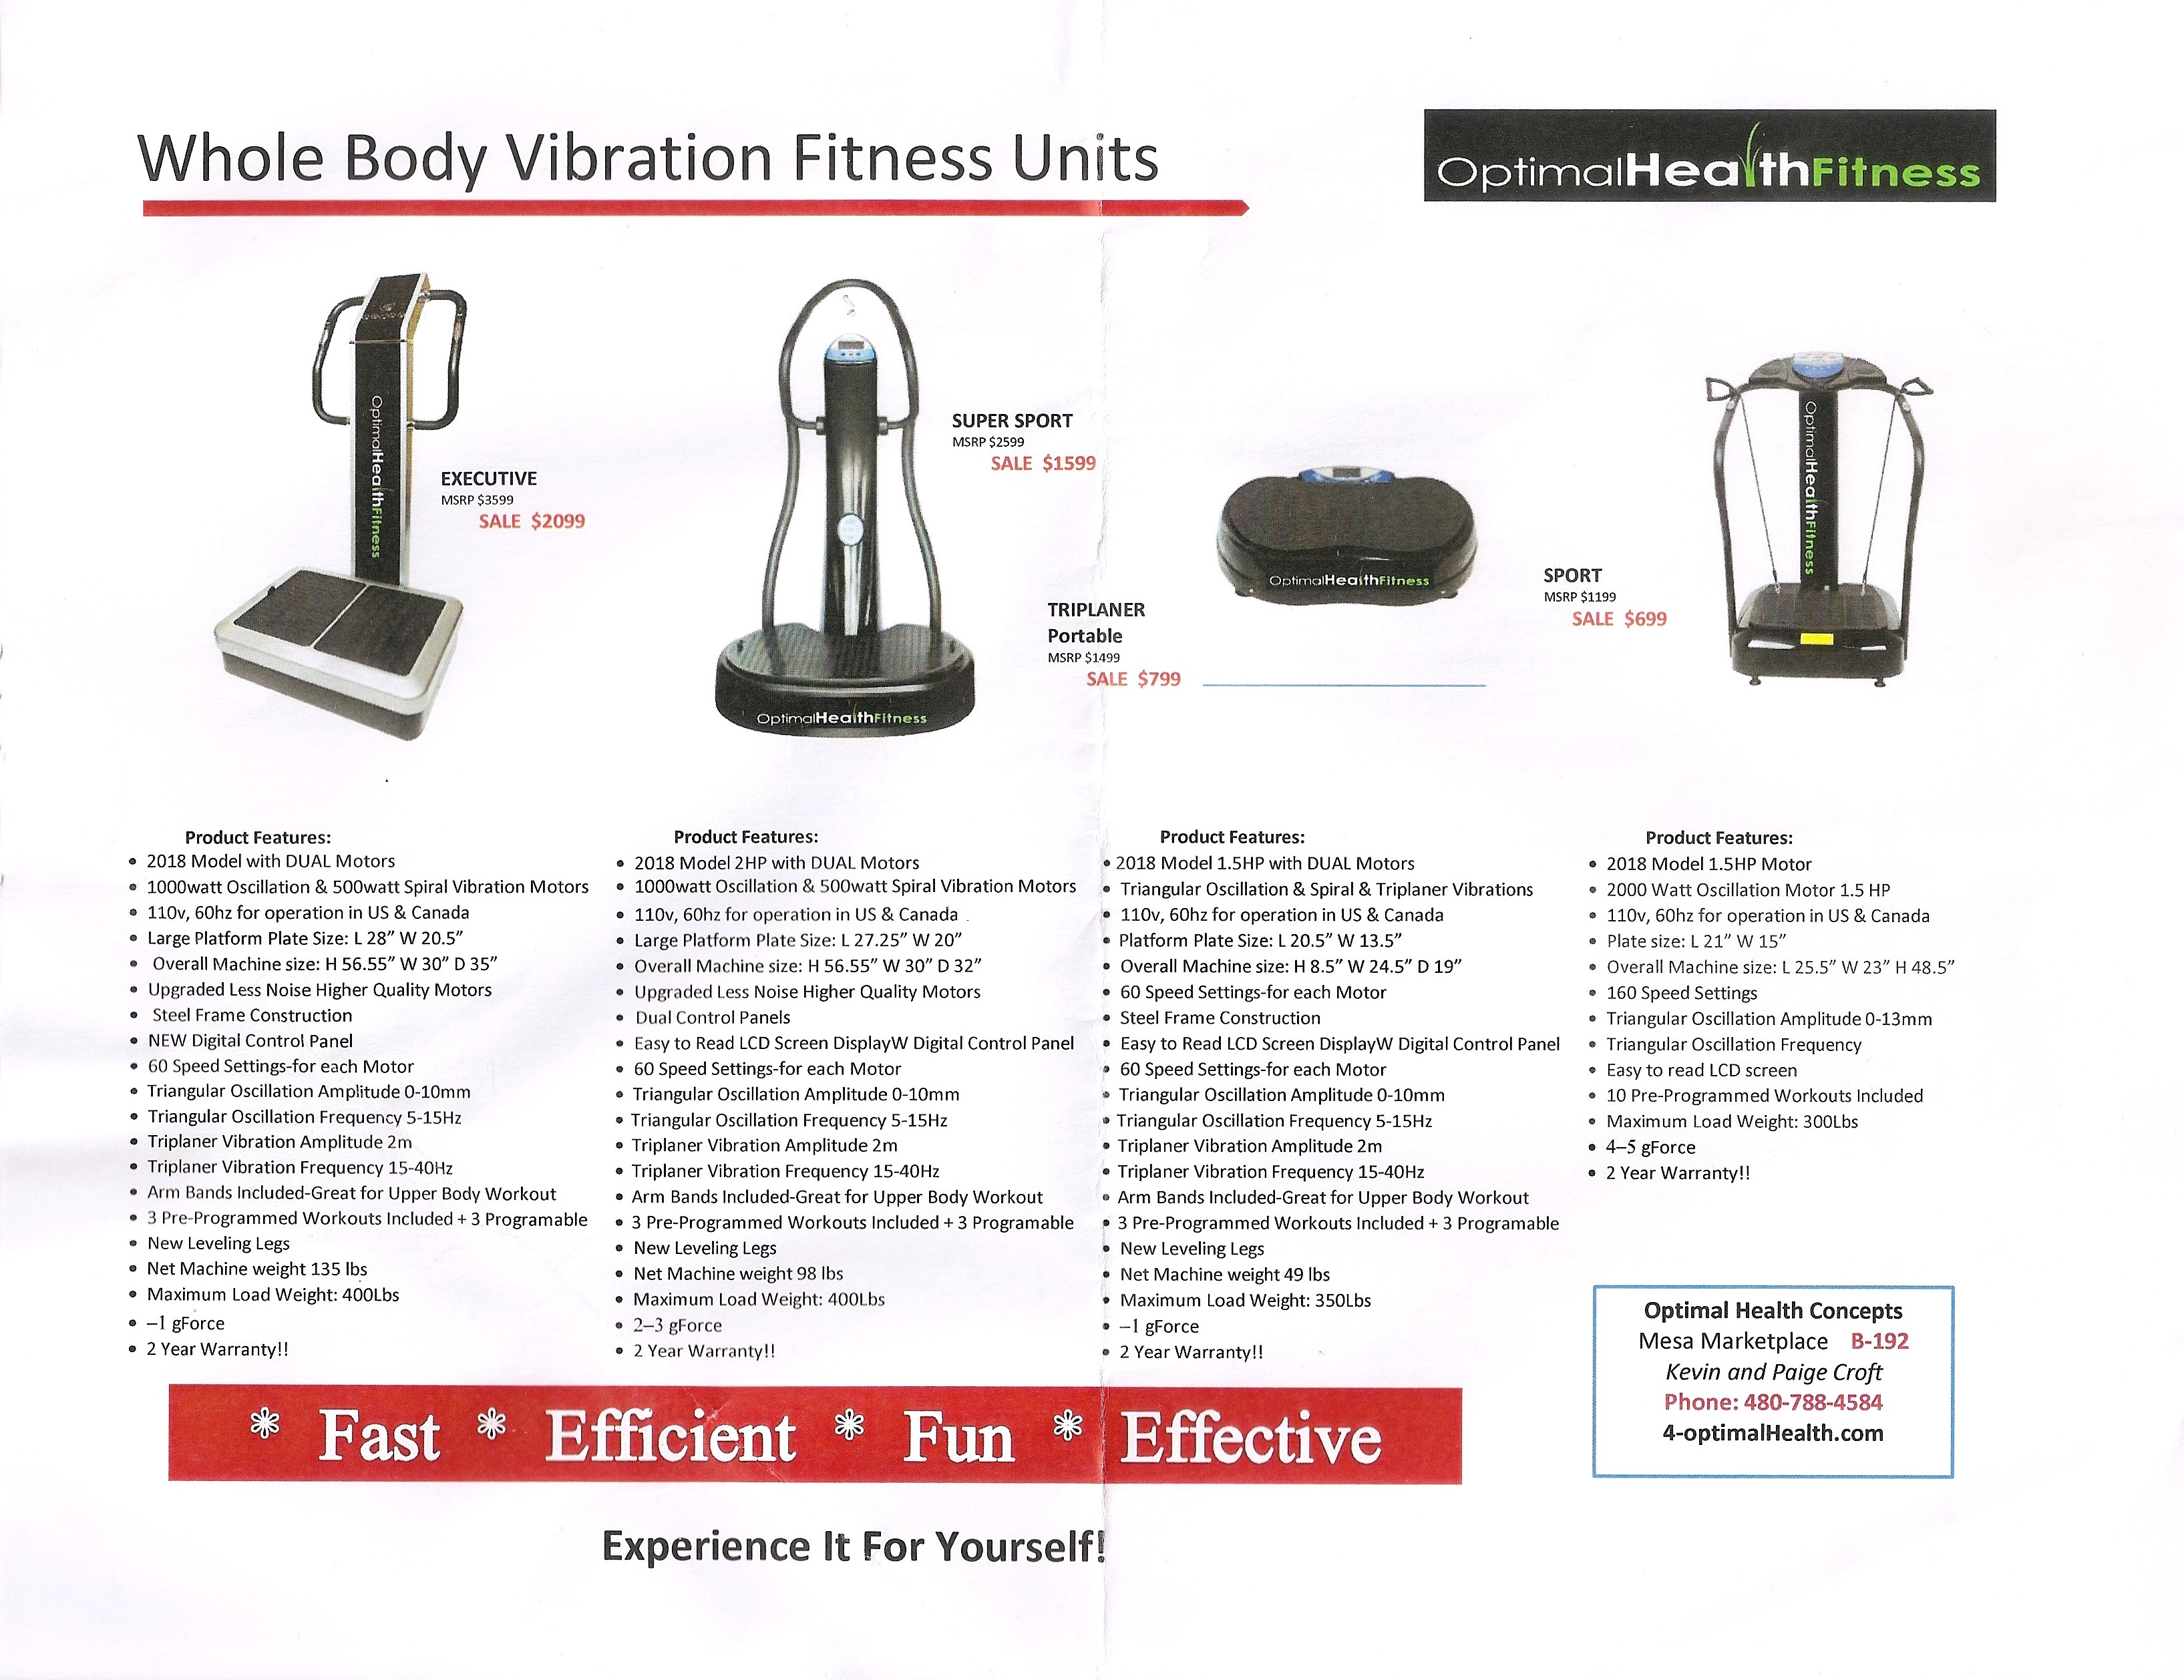 Whole Body Vibration Fitness Units